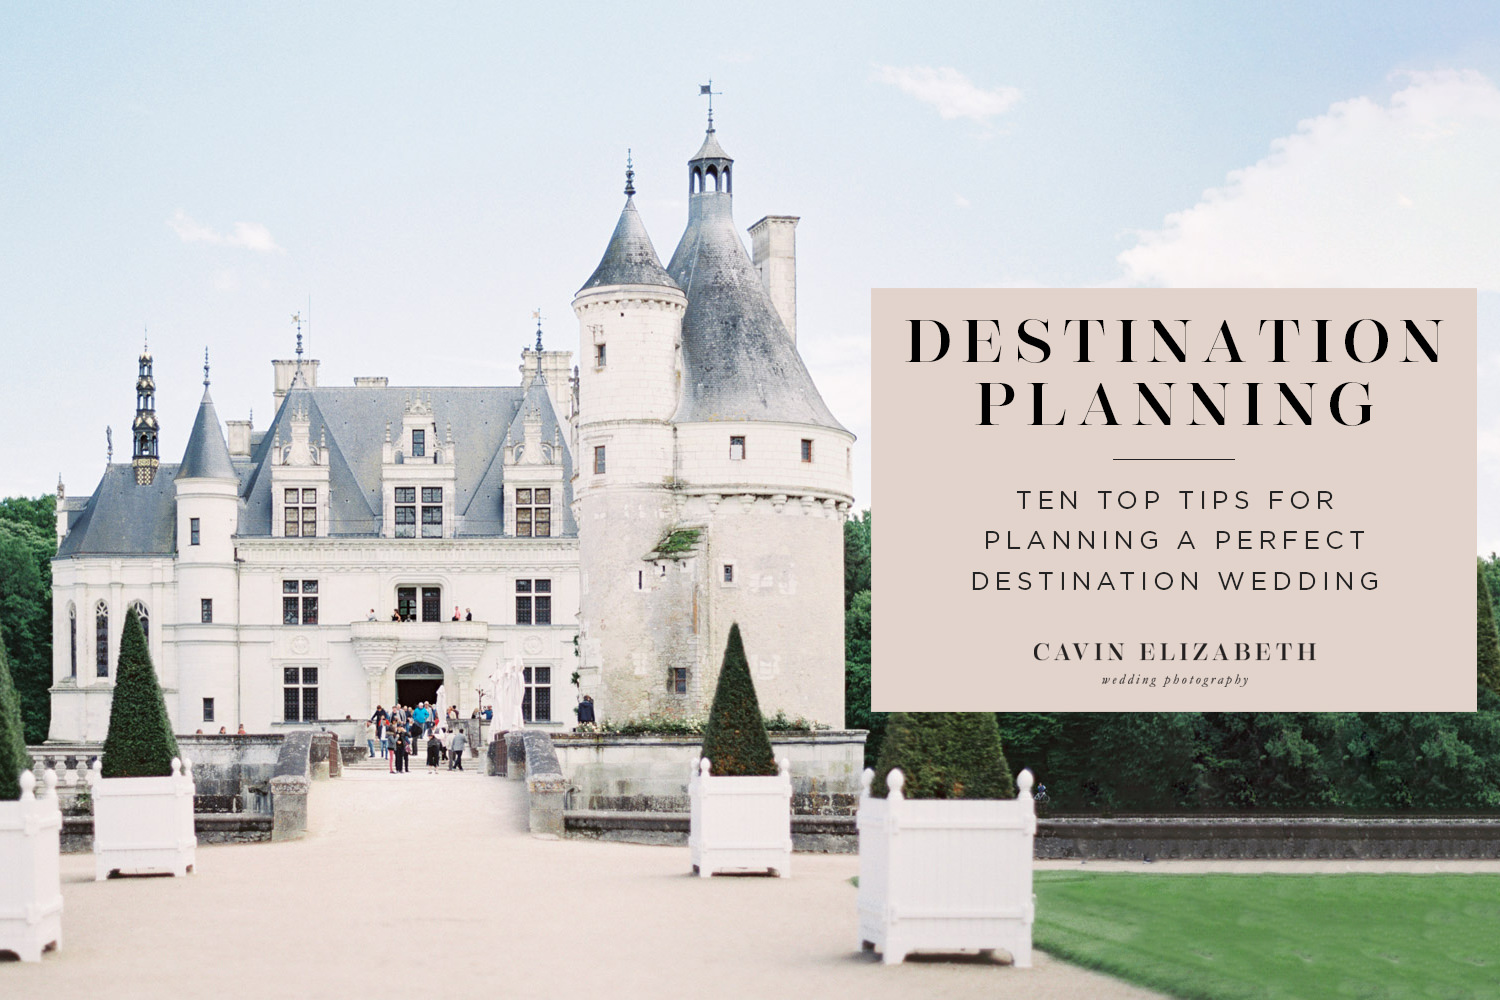 10 Tips for Planning a Perfect Destination Wedding